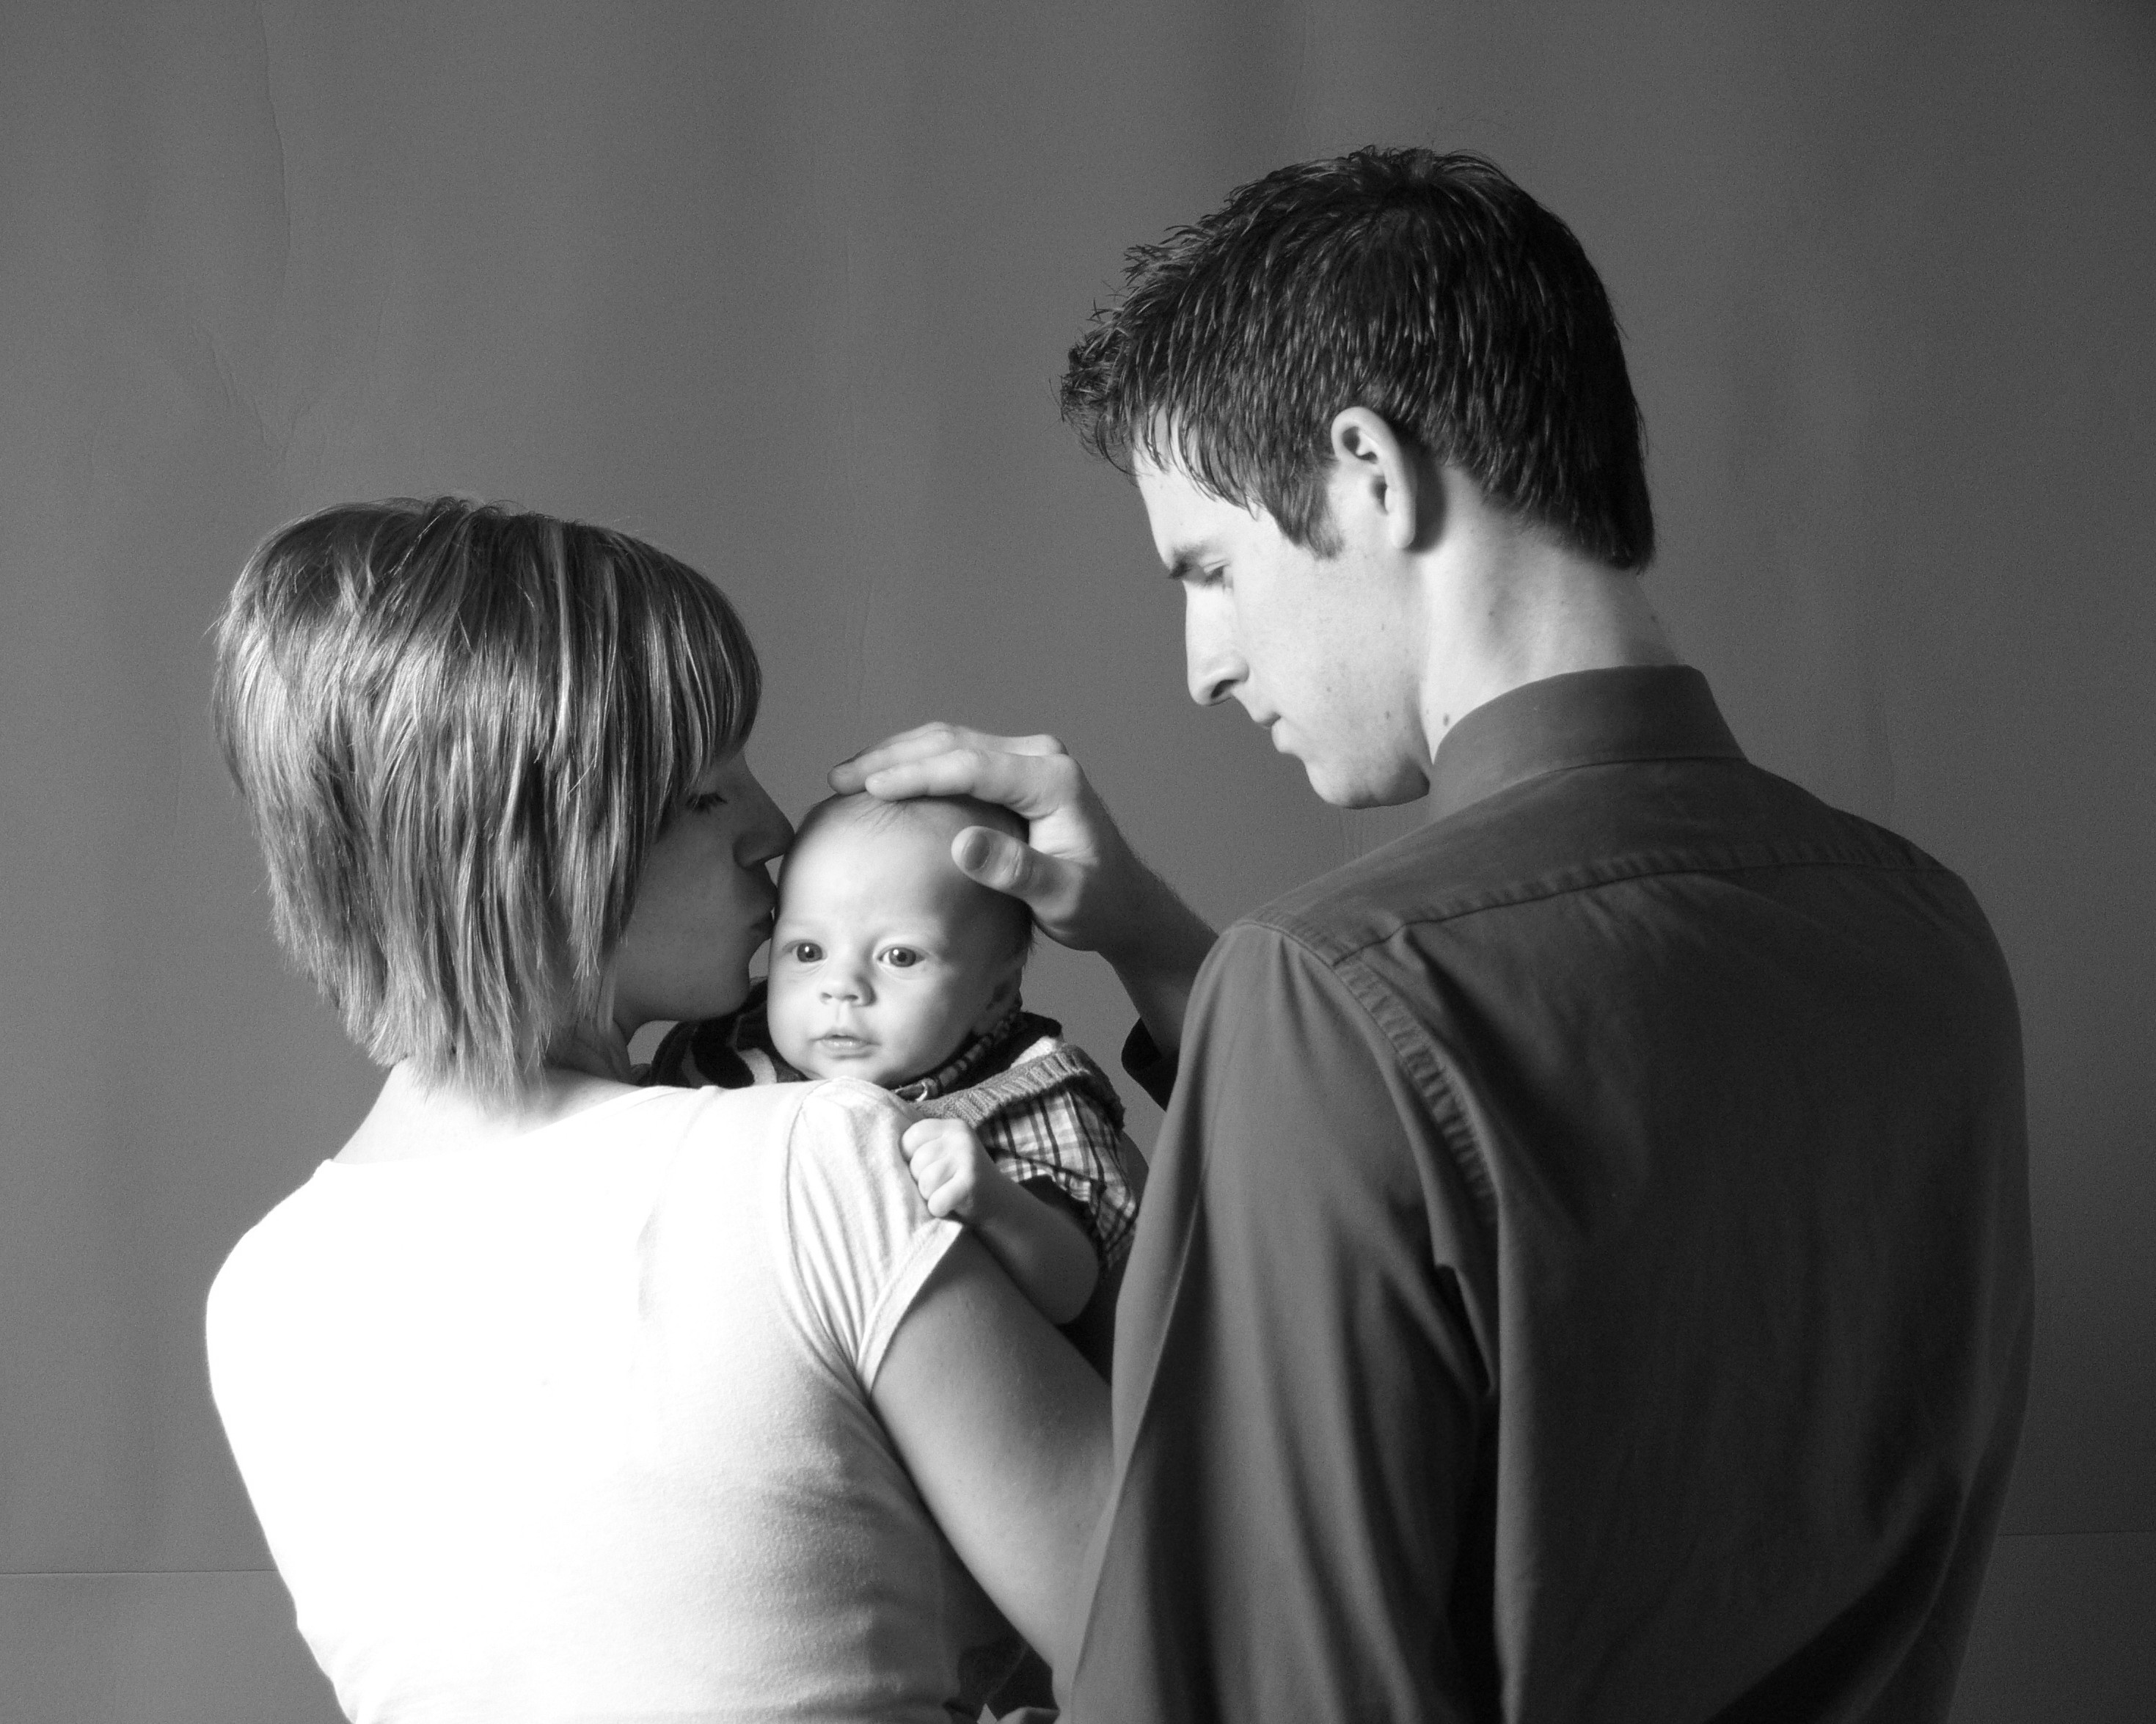 Denver couples counselor for parents